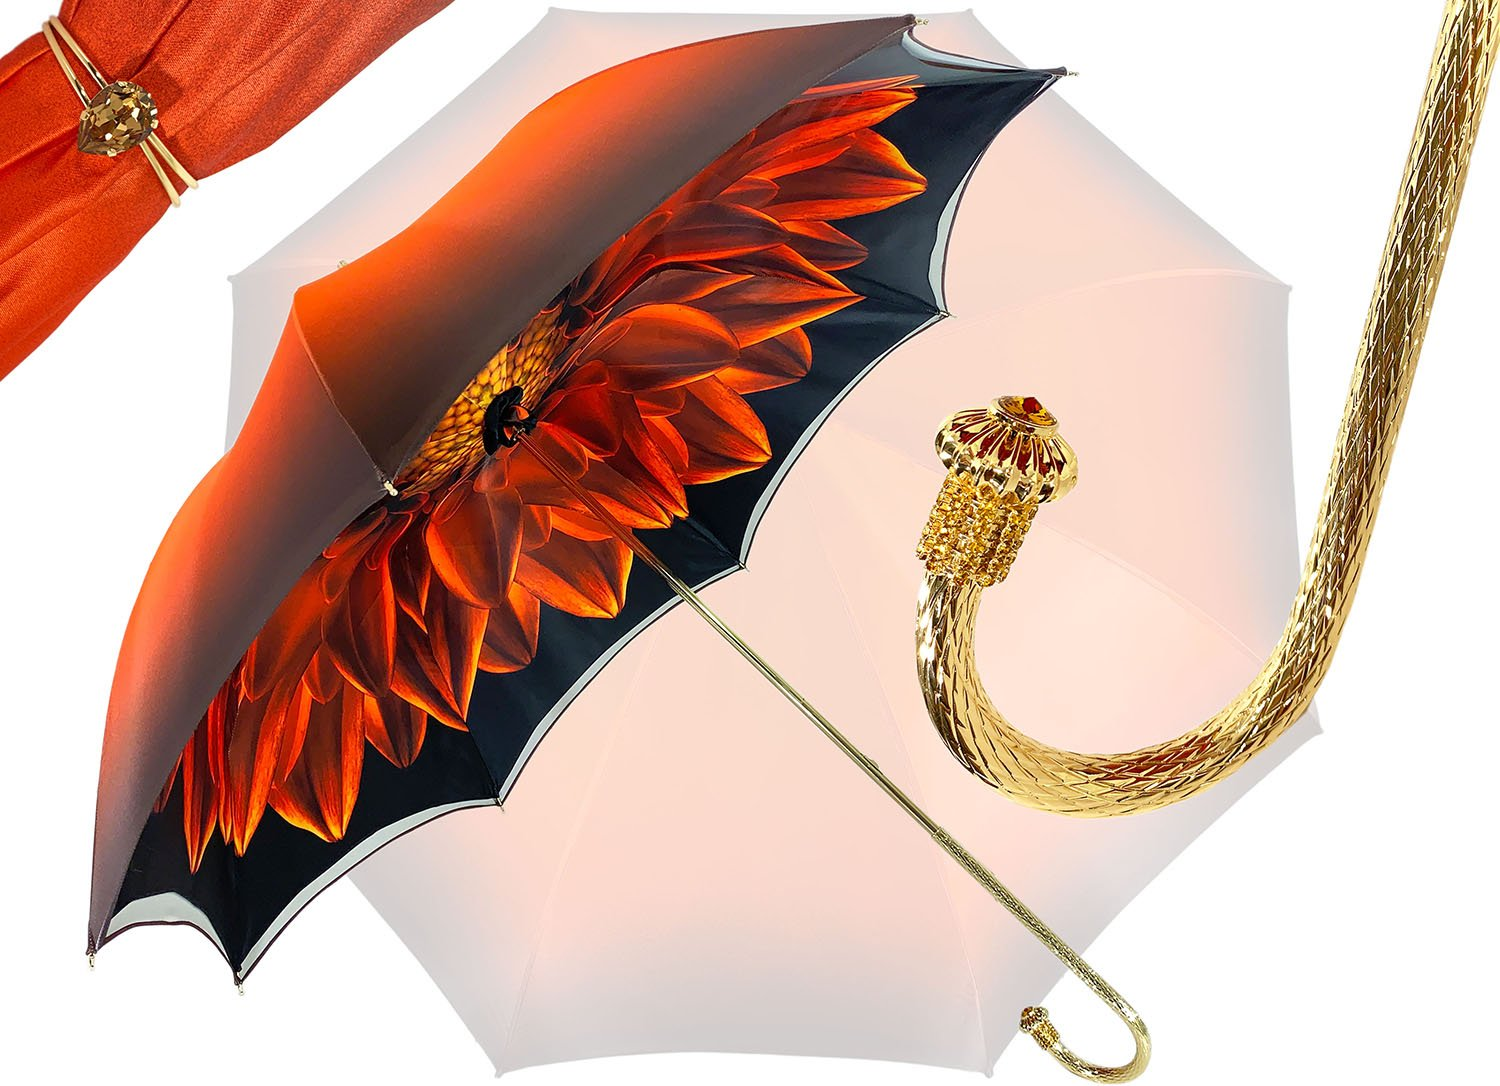 Beautiful Double Canopy Umbrella in a Luxurious Orange Satin - il-marchesato